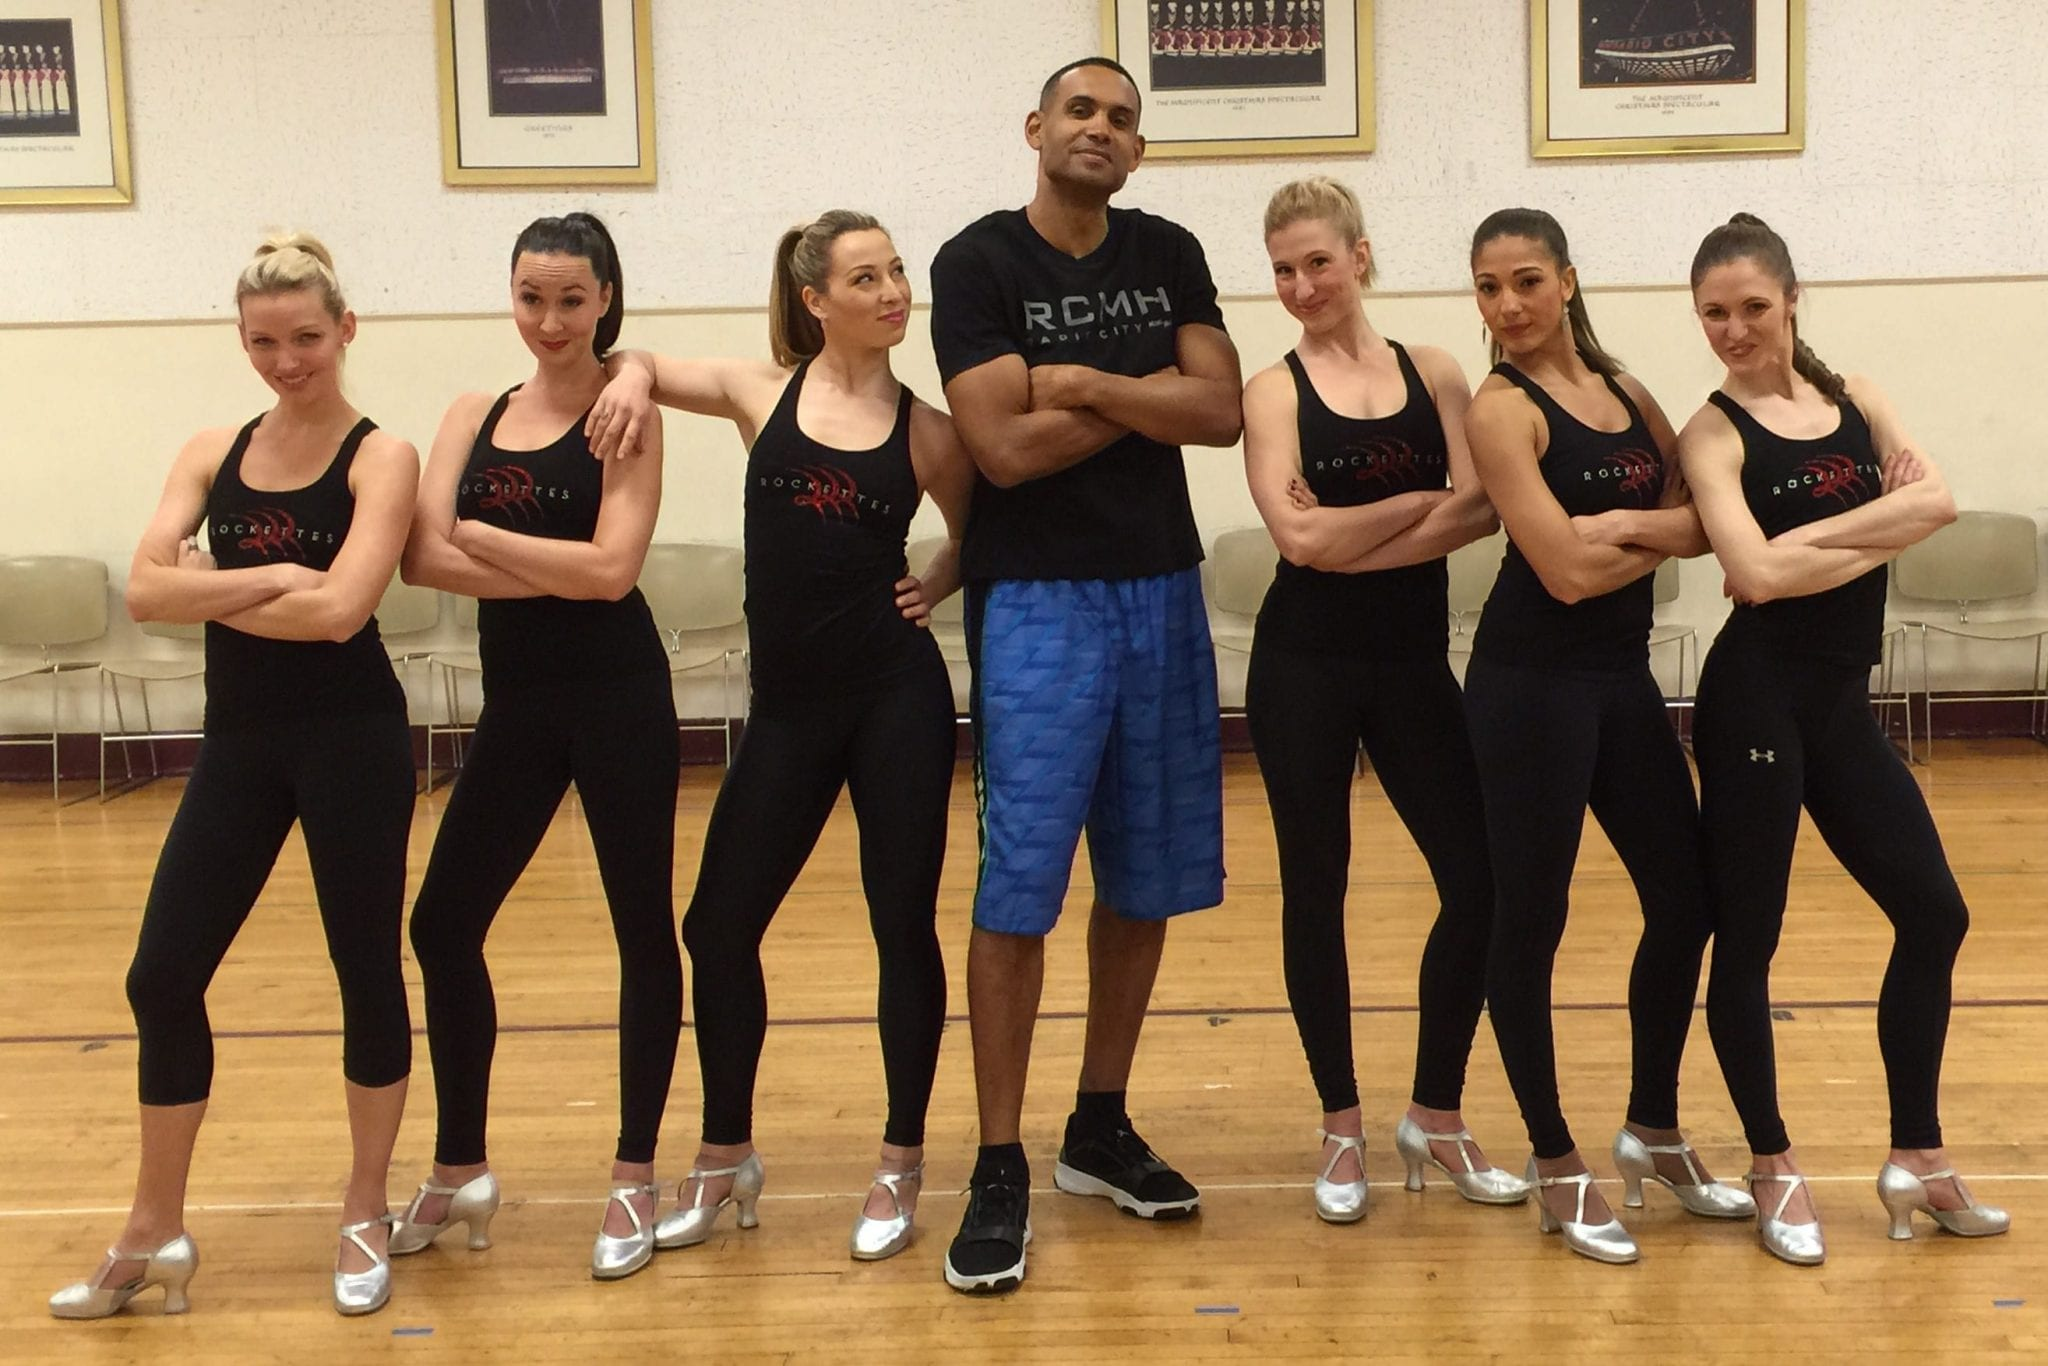 Rockettes Reflections Grant Hill